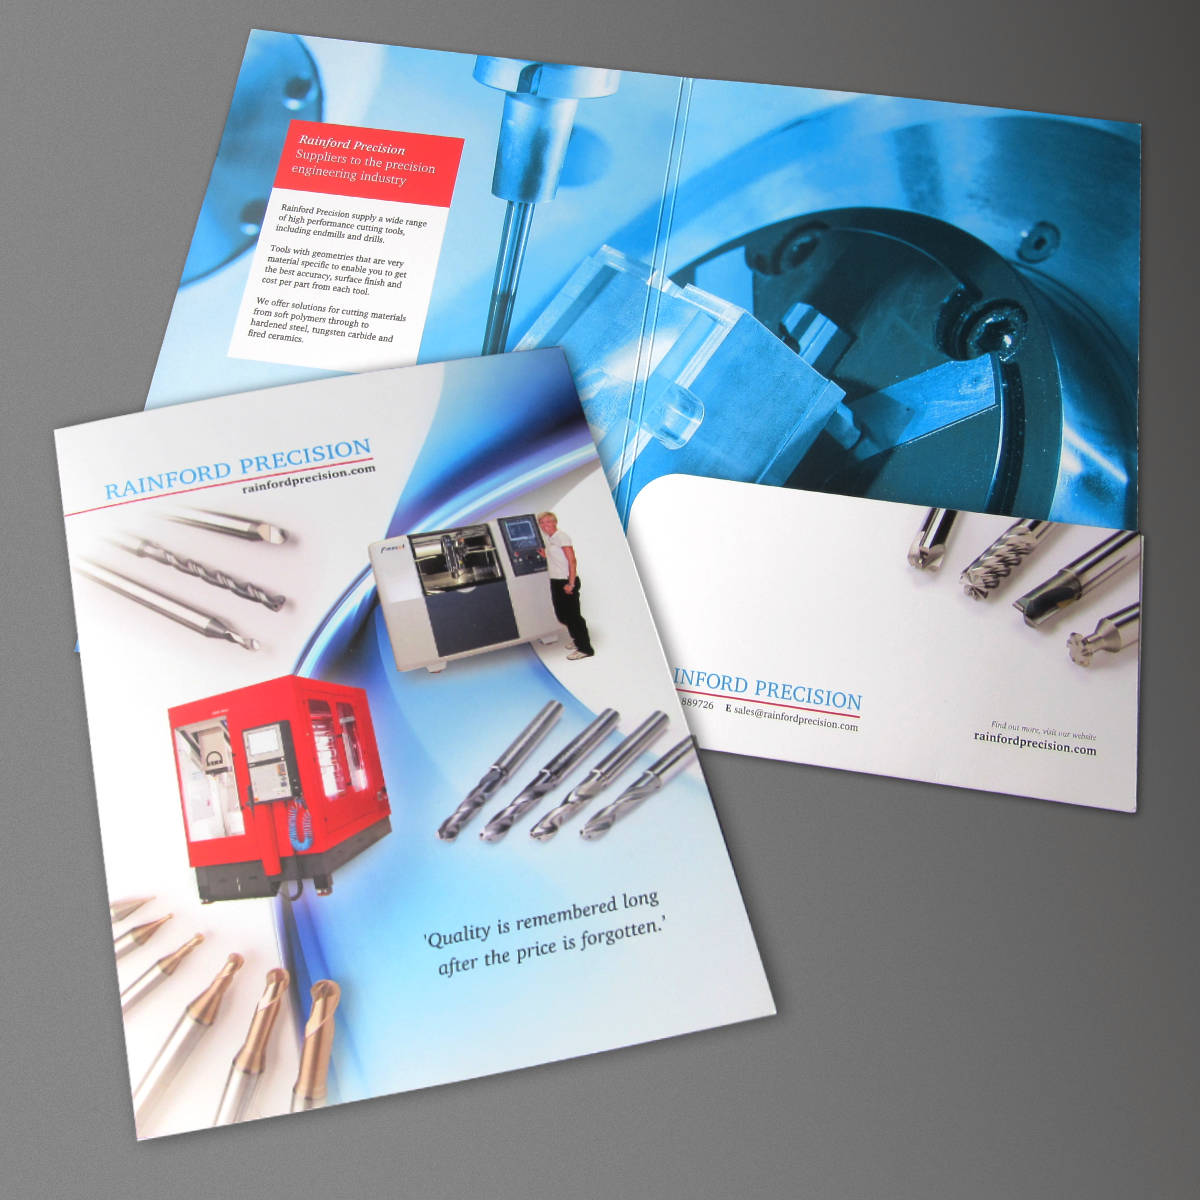 Rainford Precision Presentation Folder, print design by Orangebox